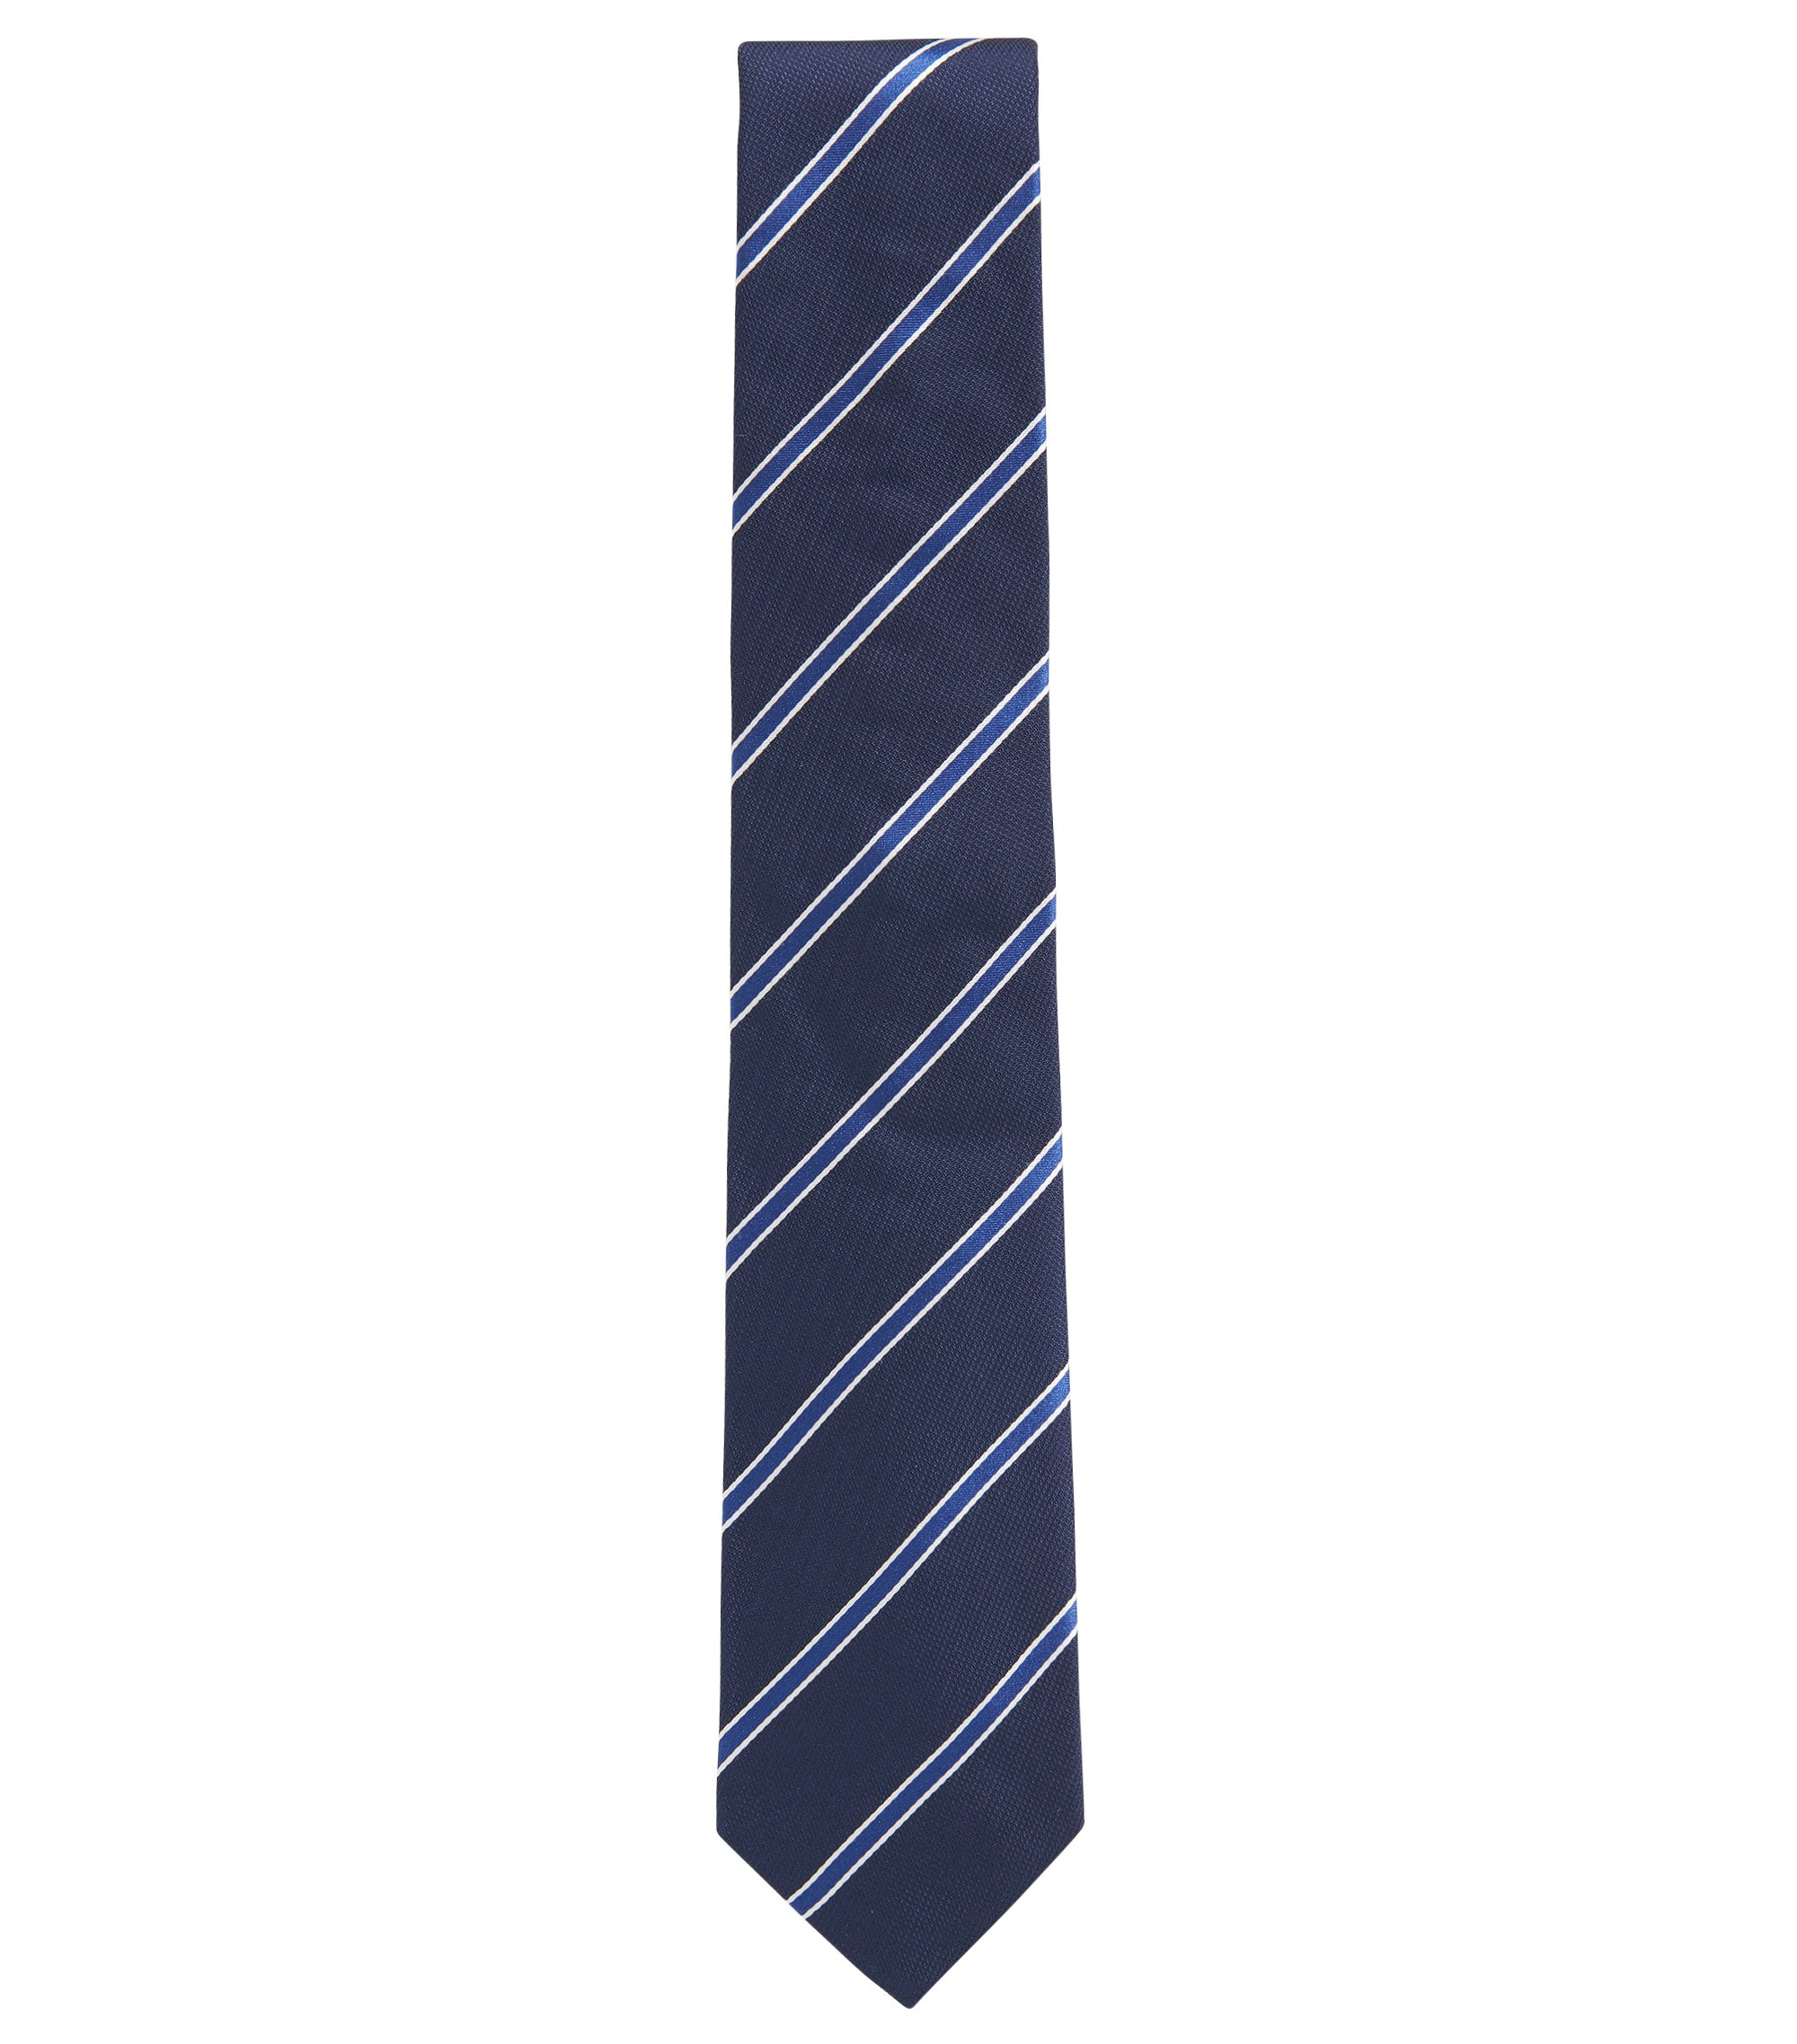 Yarn-dyed diagonal striped tie in silk jacquard, Blue